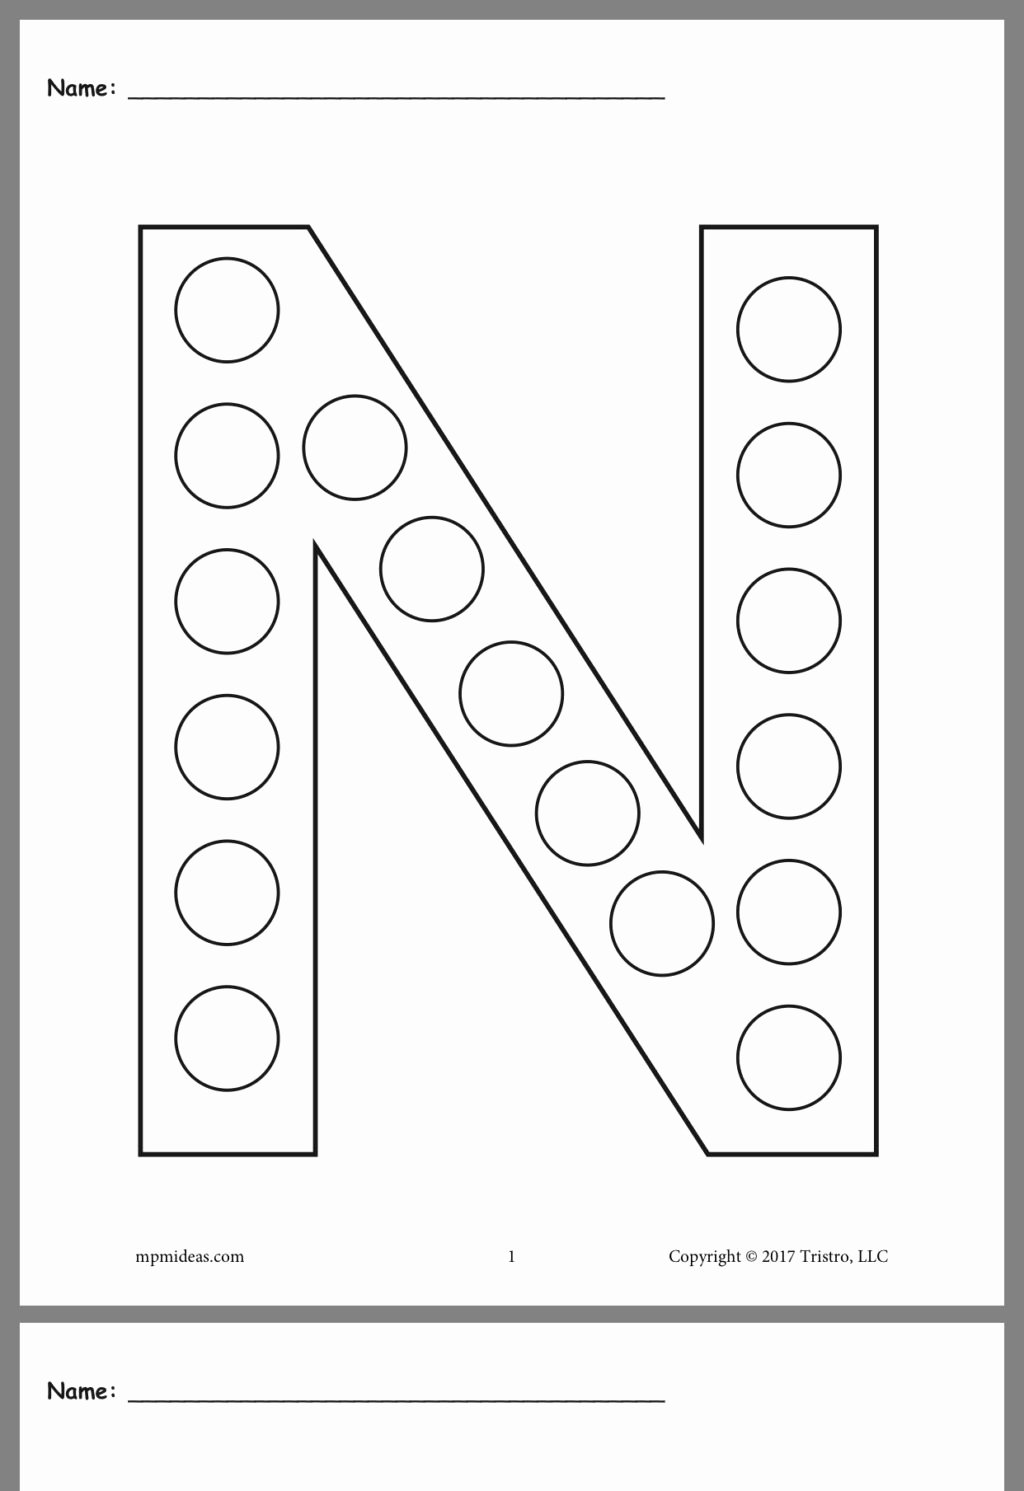 Worksheets for Preschoolers On Letters Awesome Worksheet Preschool Letter Worksheets Pin by Lynsey Staner